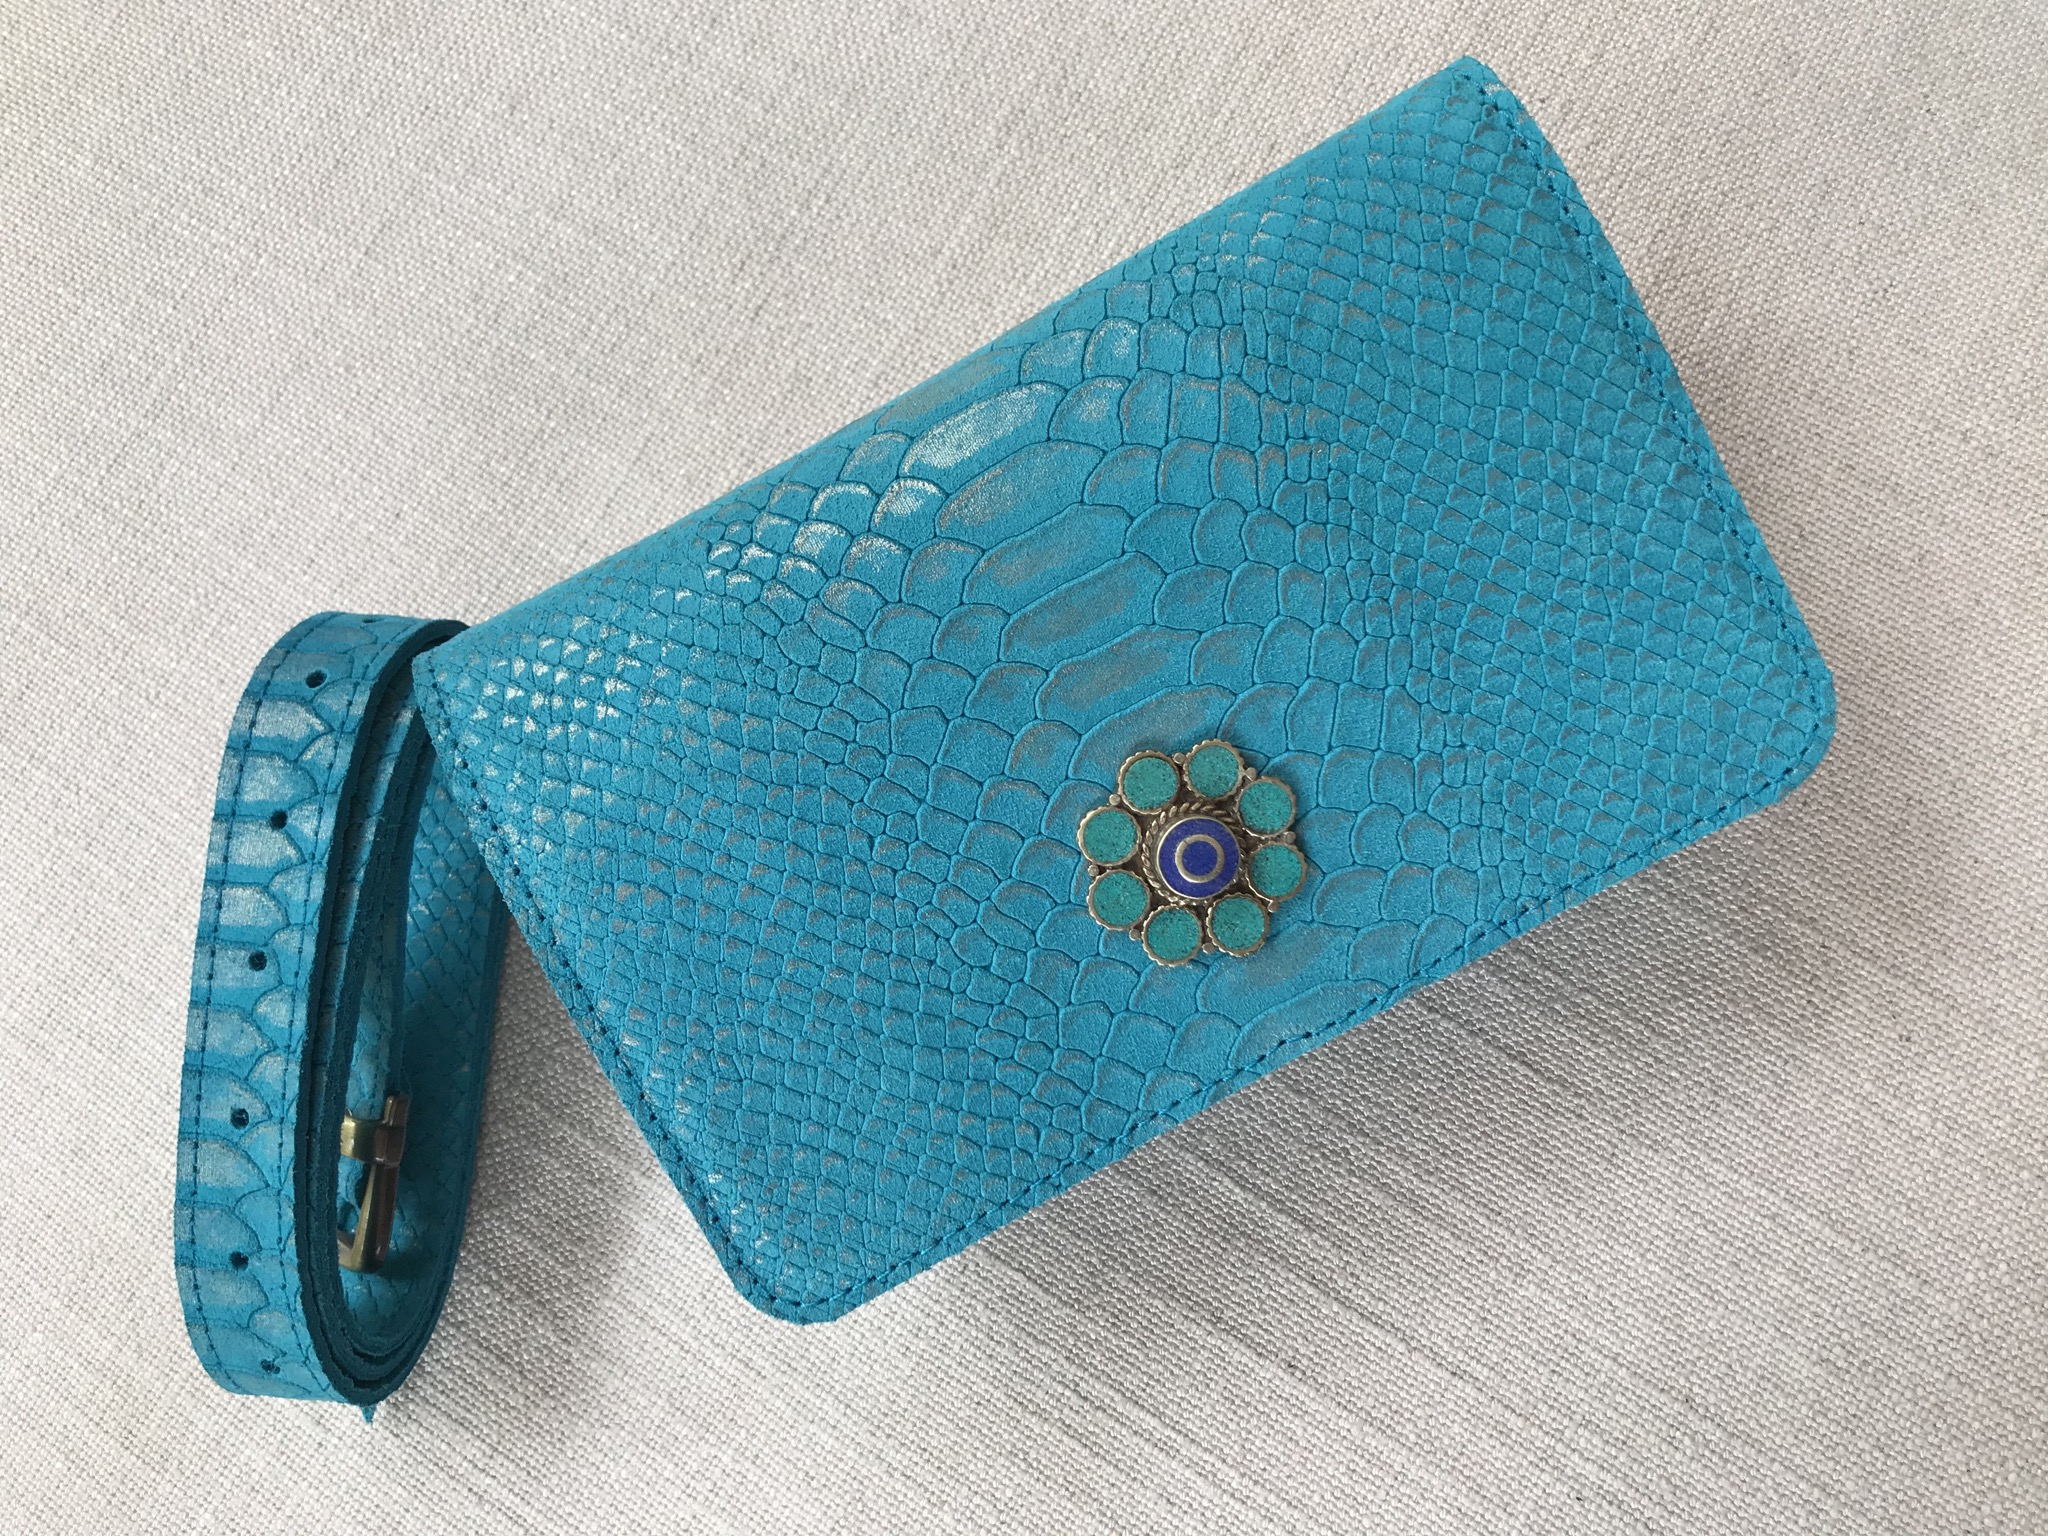 Beltbag leather croco turquoise with jewelry artisanal